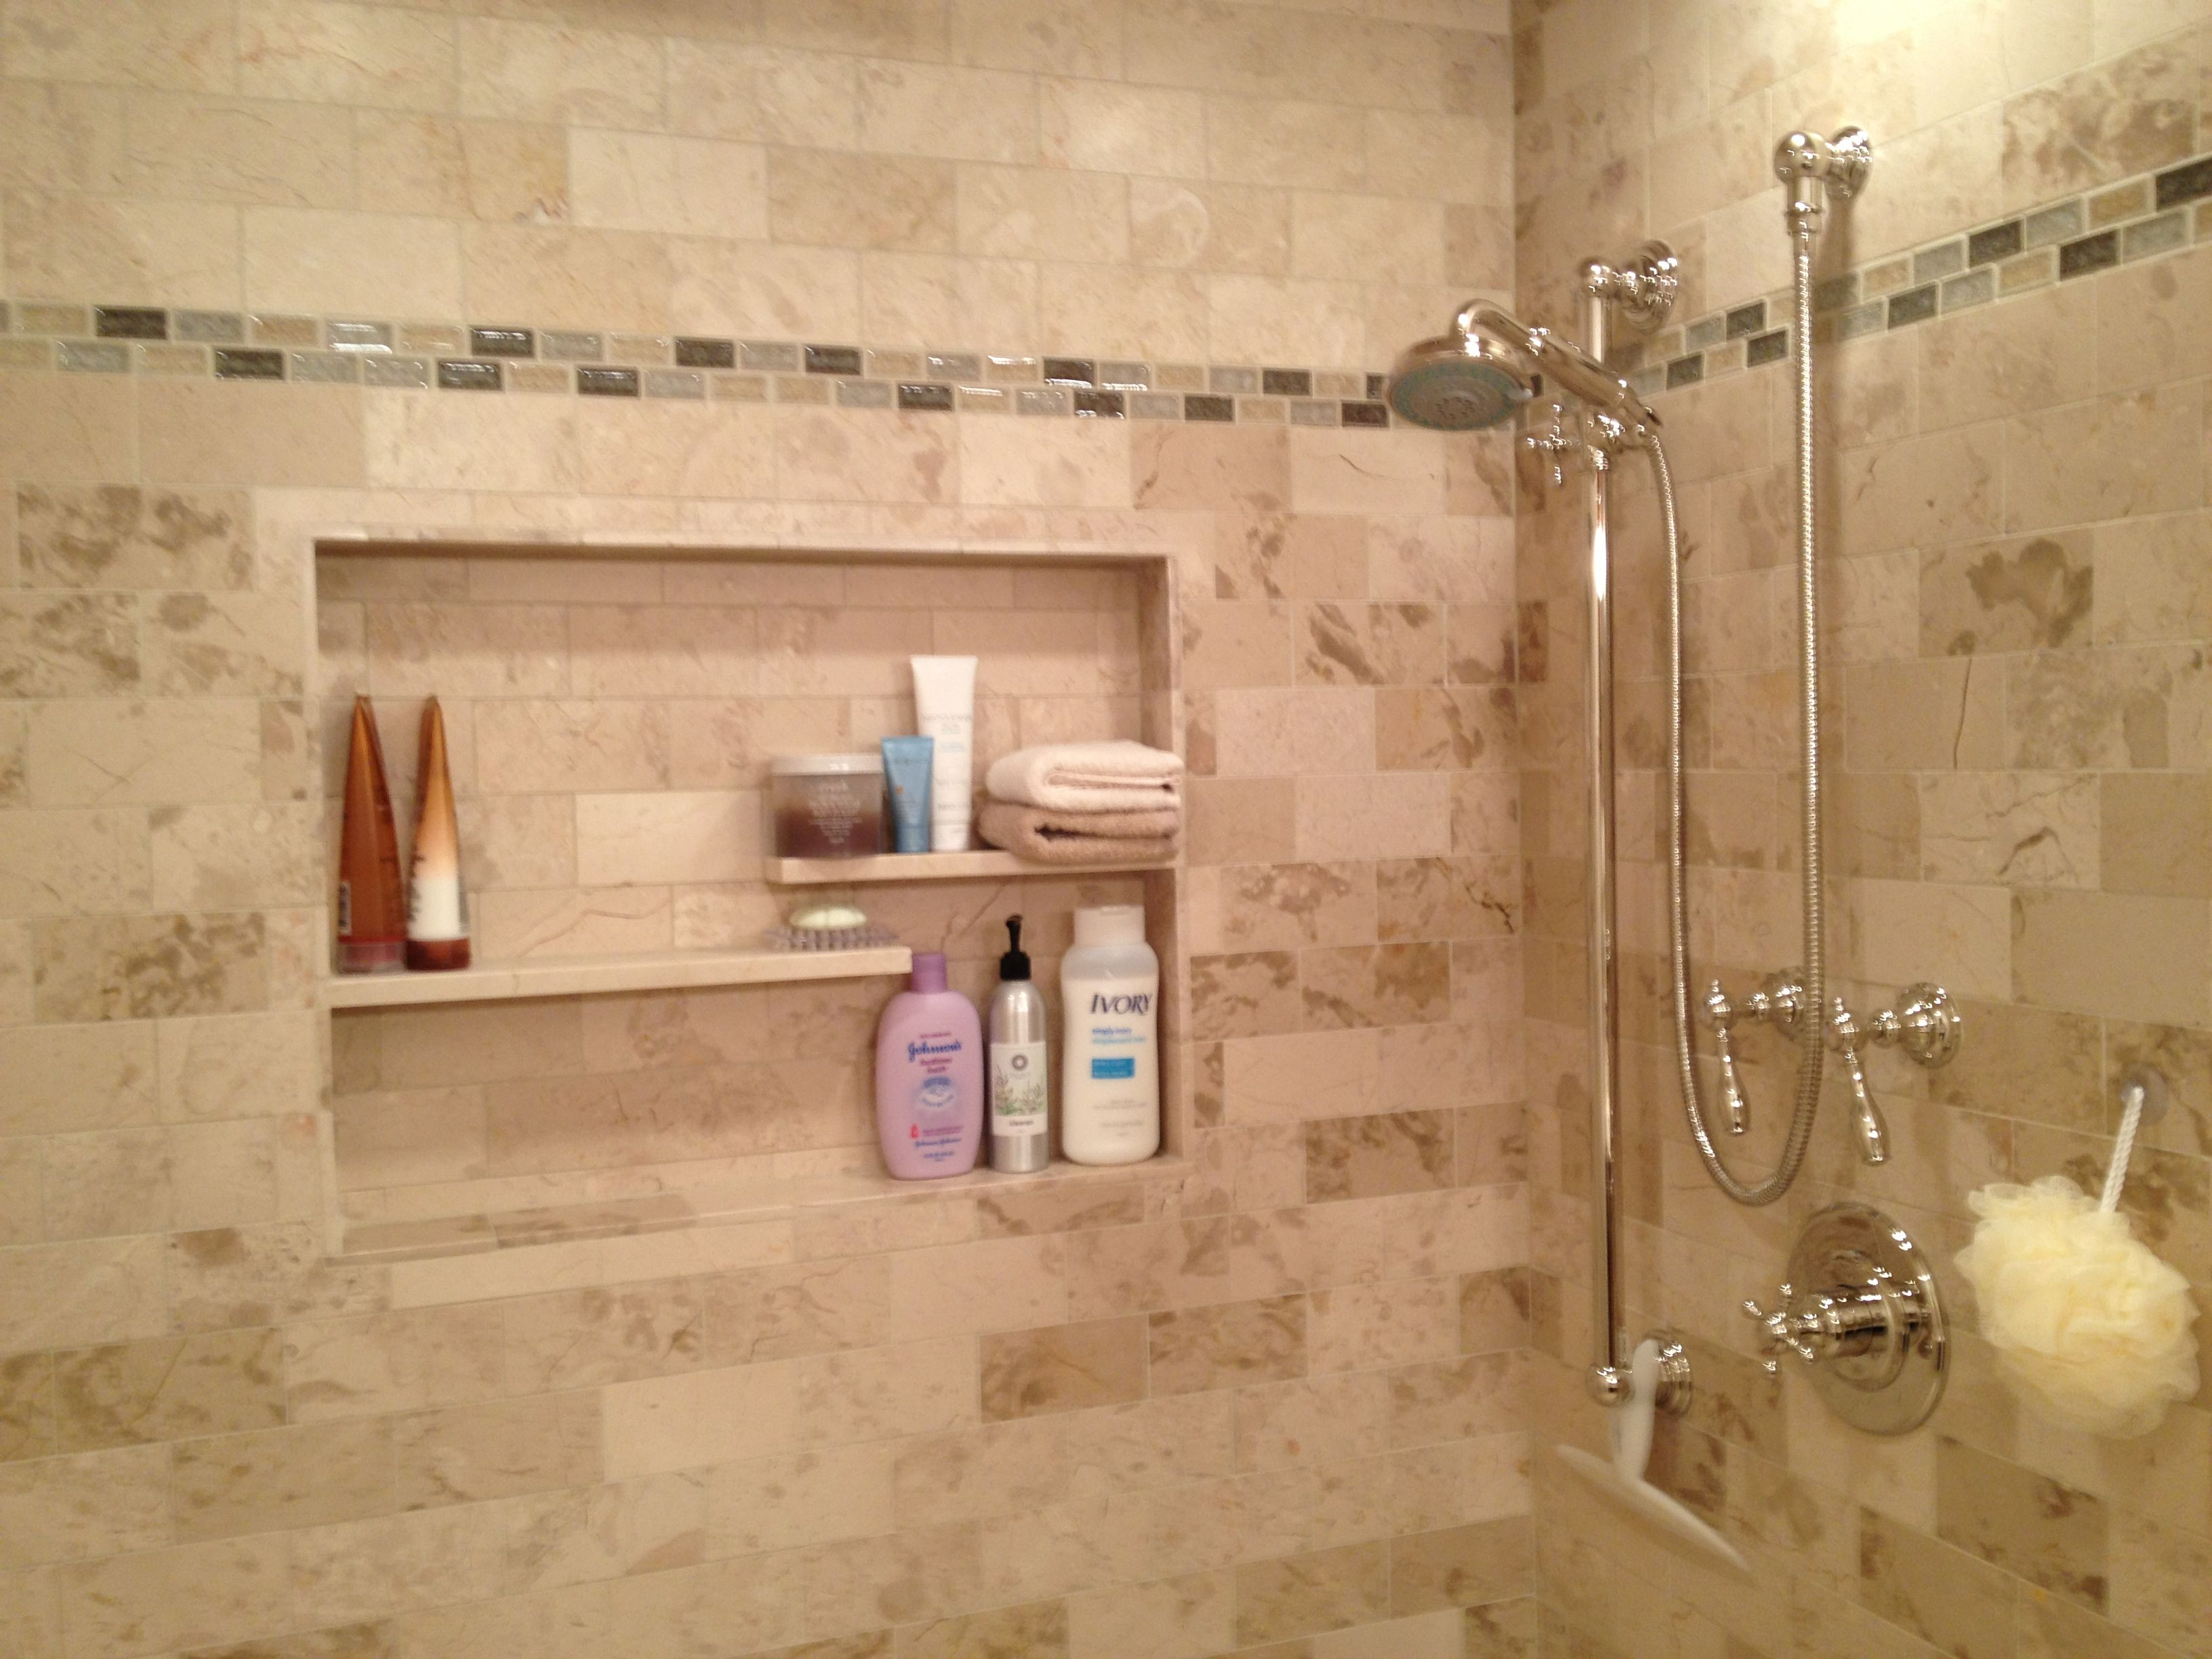 Great Chrome Wall Shower Panels With Shower Niche For Soap And Shampoo Storage In Modern Walk In Shower Designs